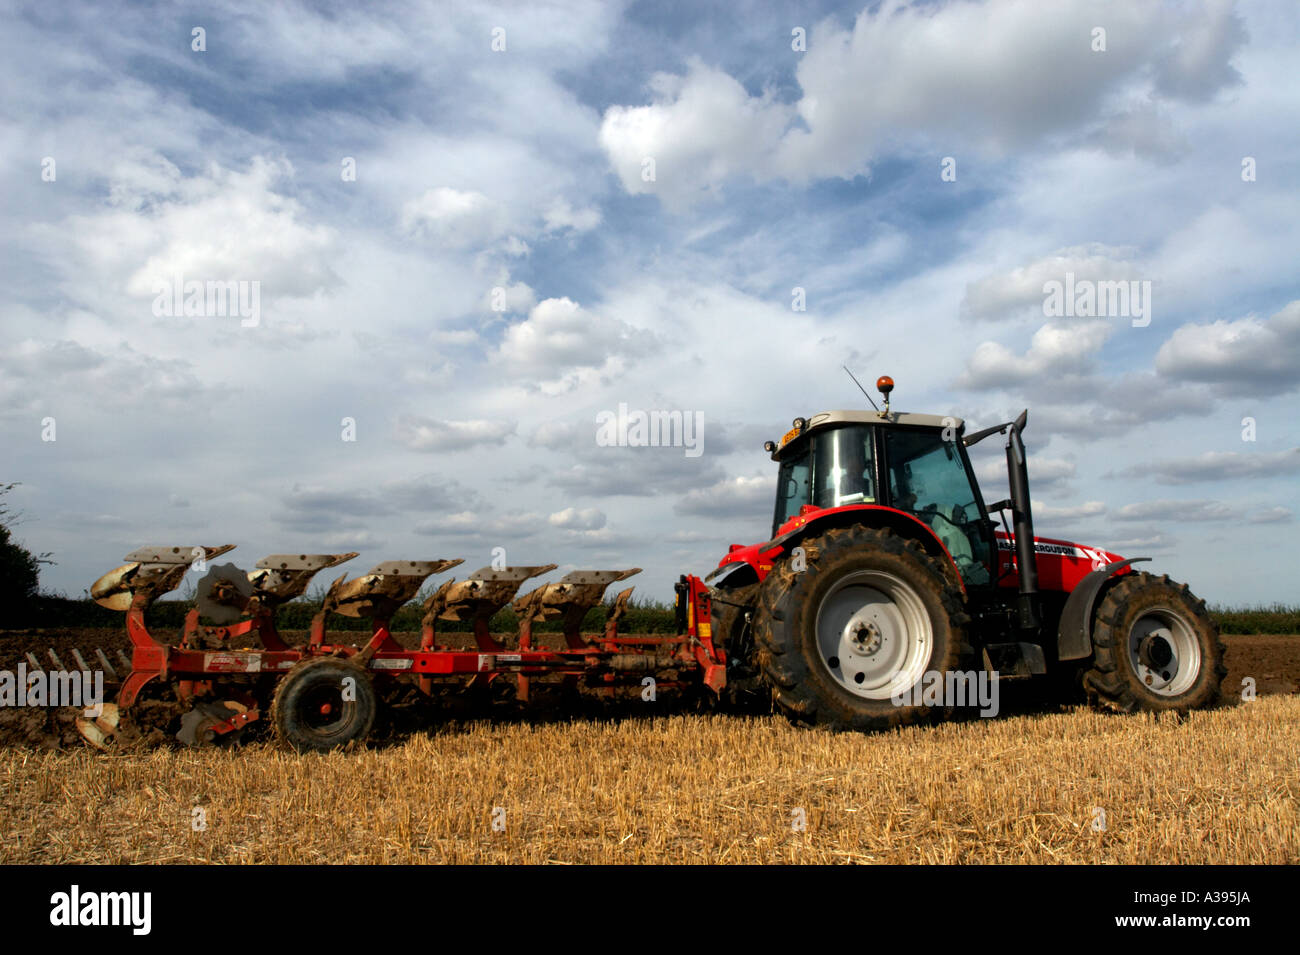 Tractor and Plough - Stock Image